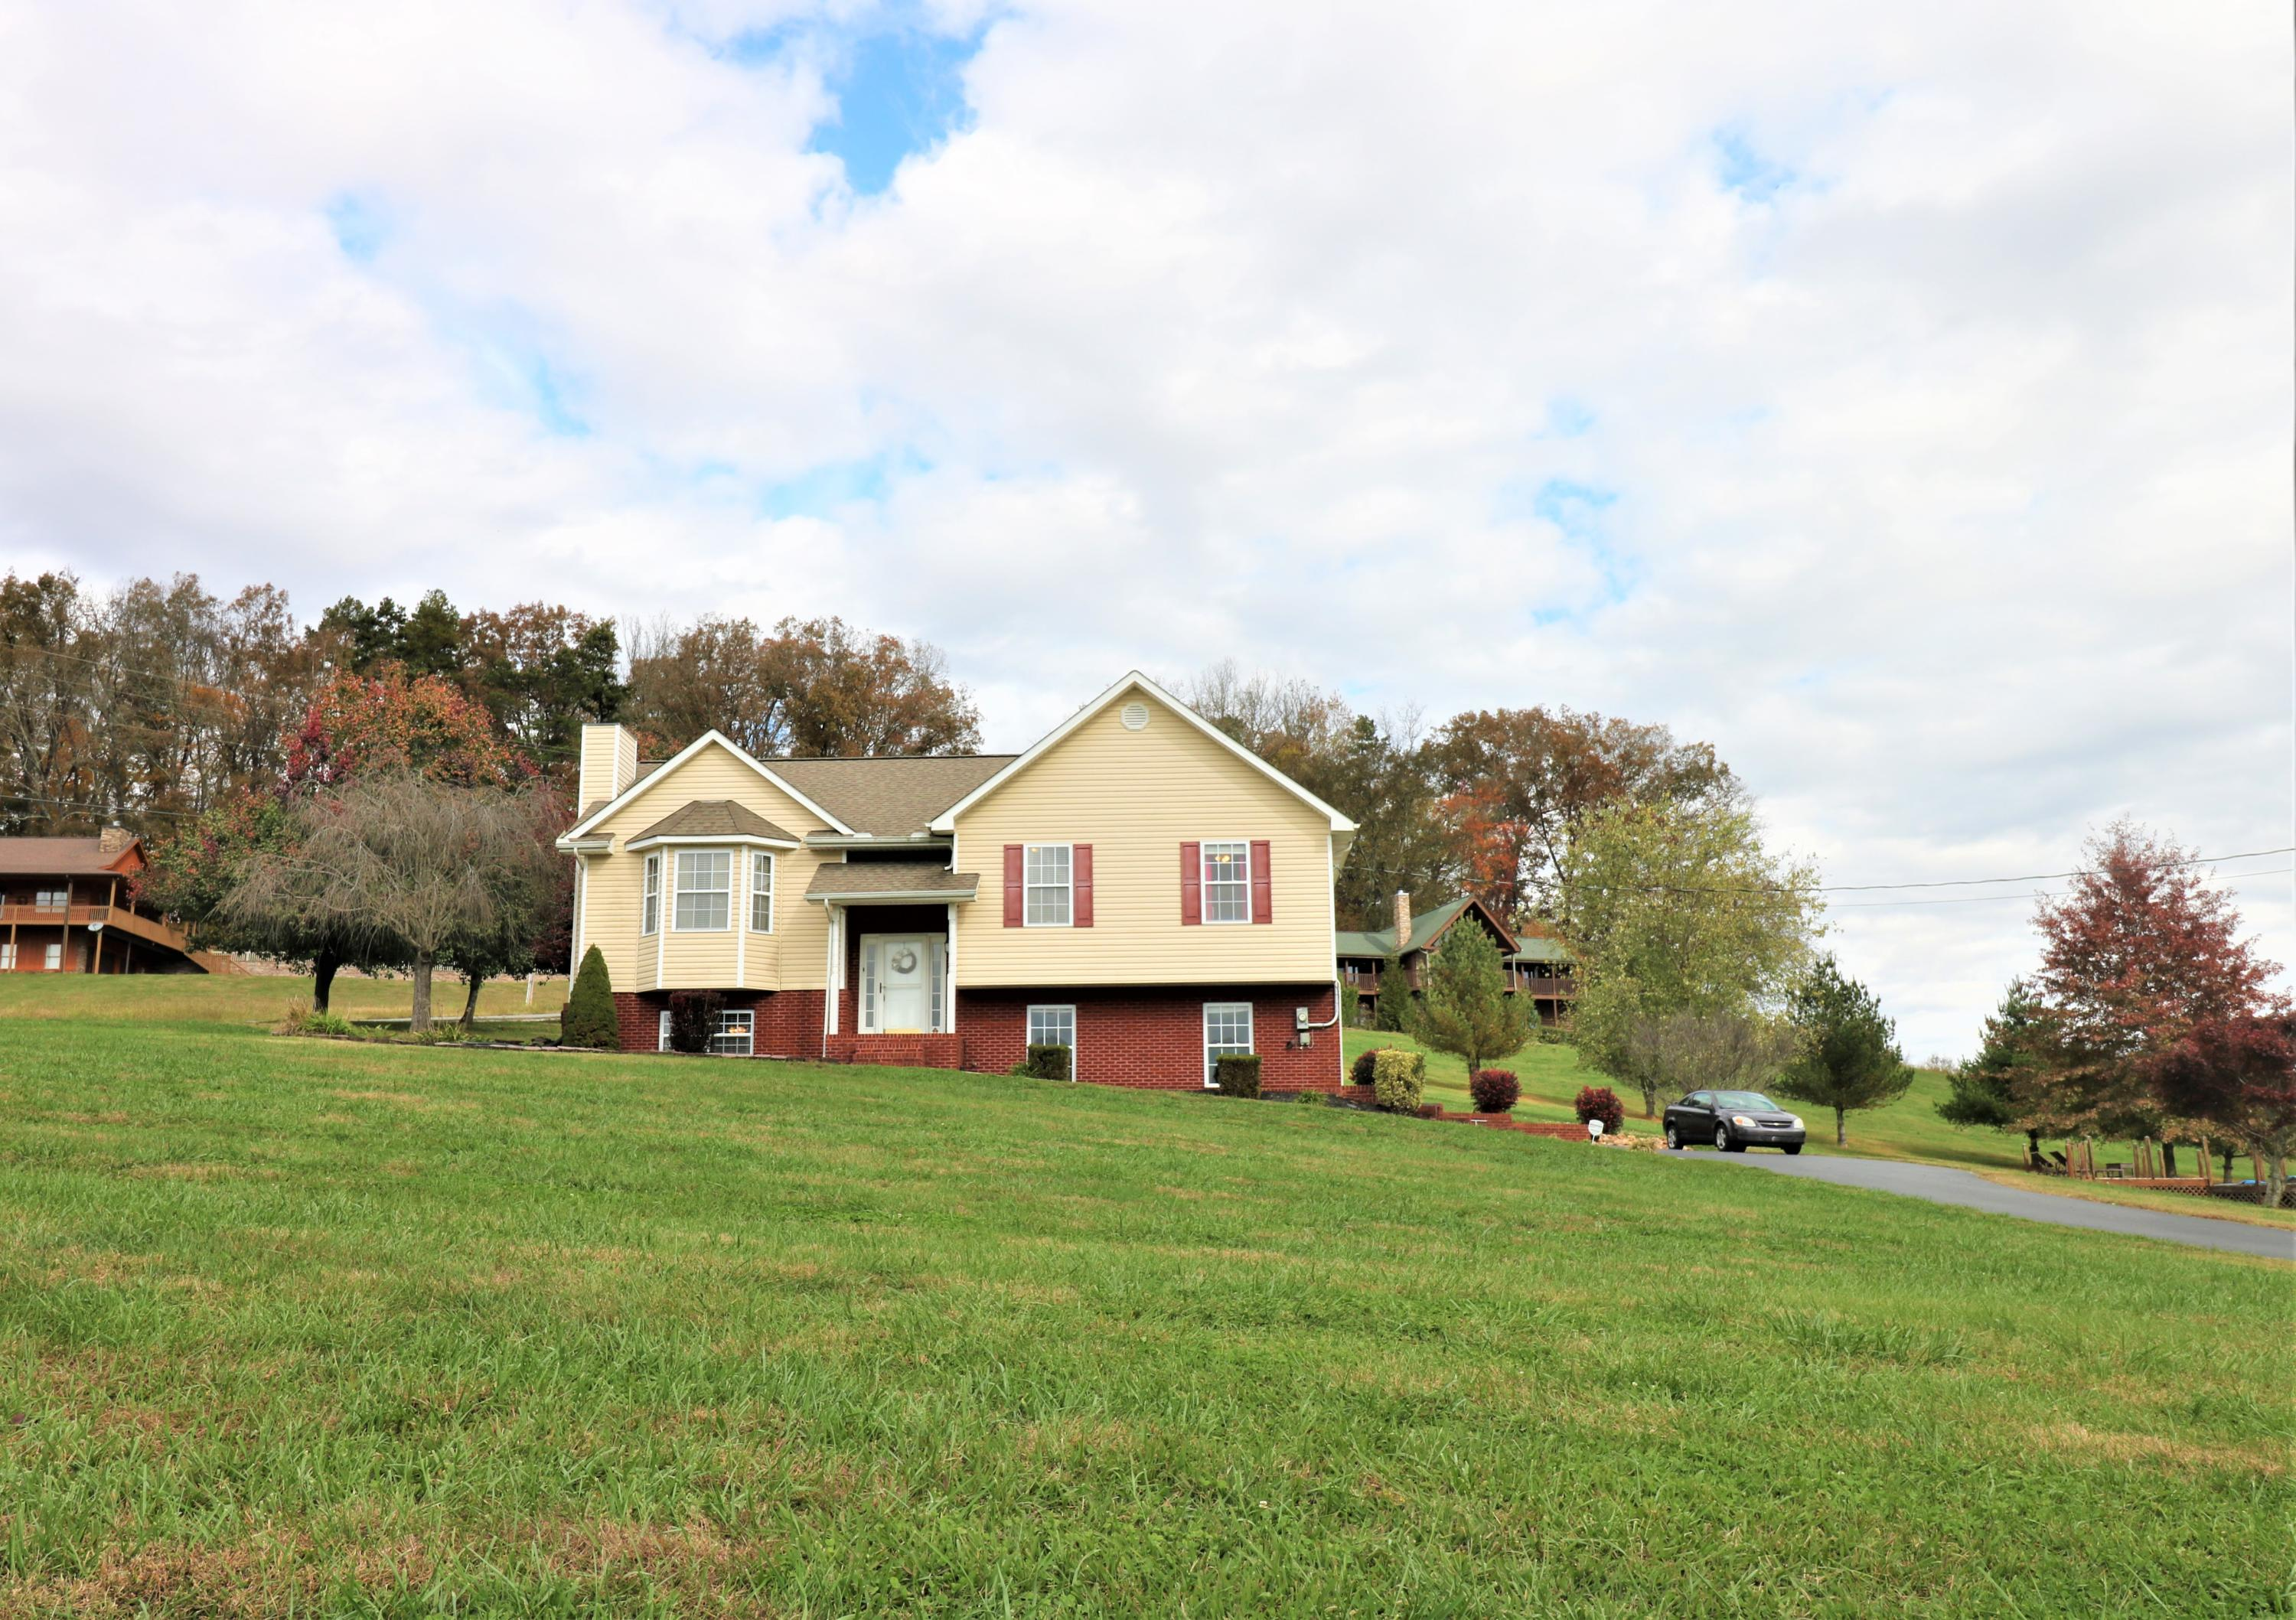 659 Holston Shores Drive, Rutledge, Tennessee 37861, 3 Bedrooms Bedrooms, ,3 BathroomsBathrooms,Single Family,For Sale,Holston Shores,1061779